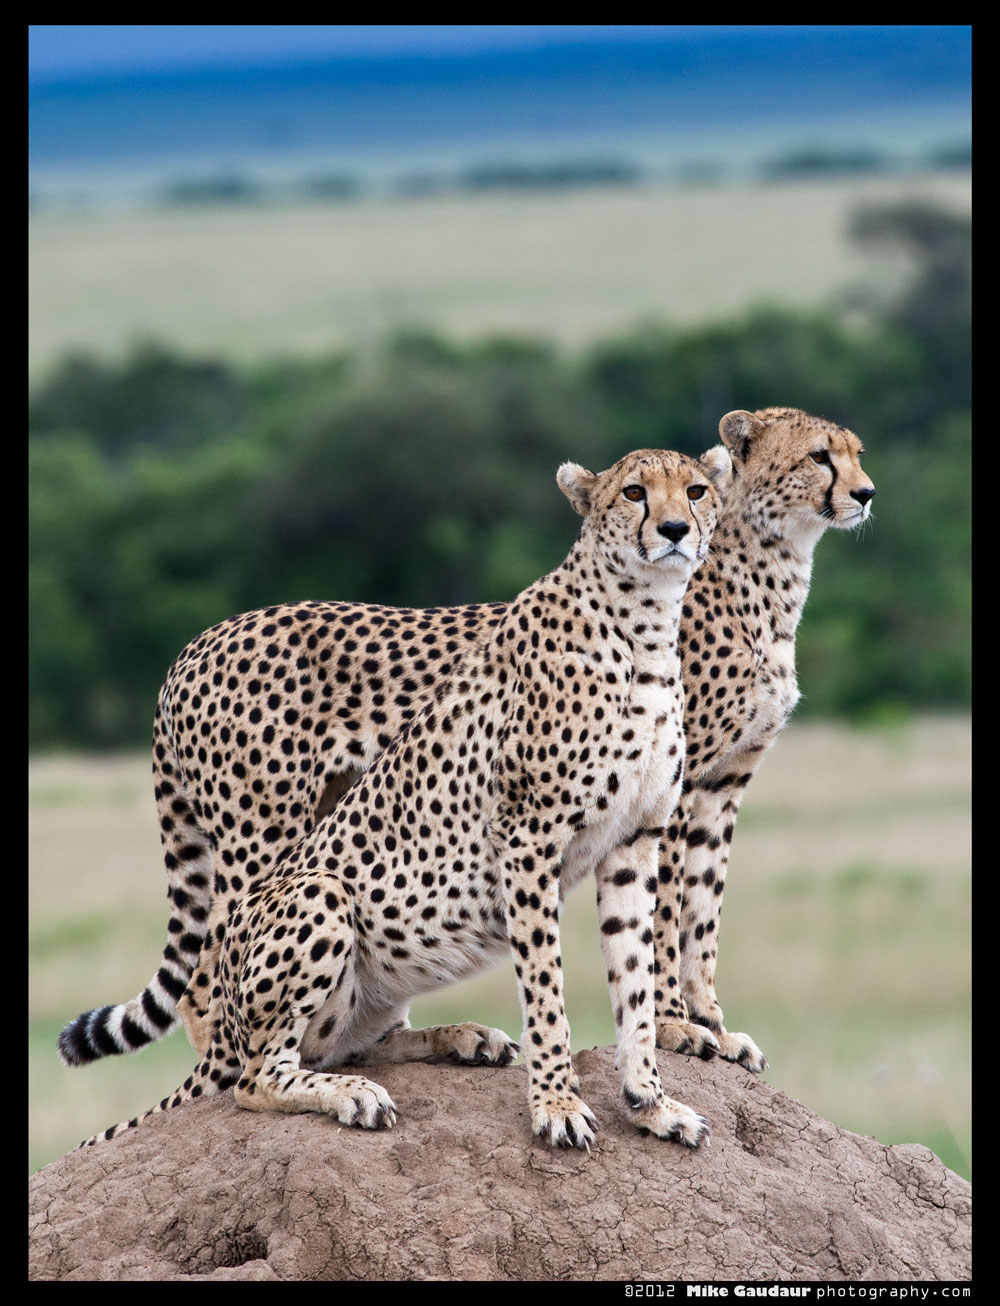 Cheetah brothers on a termite mound taken in low light.